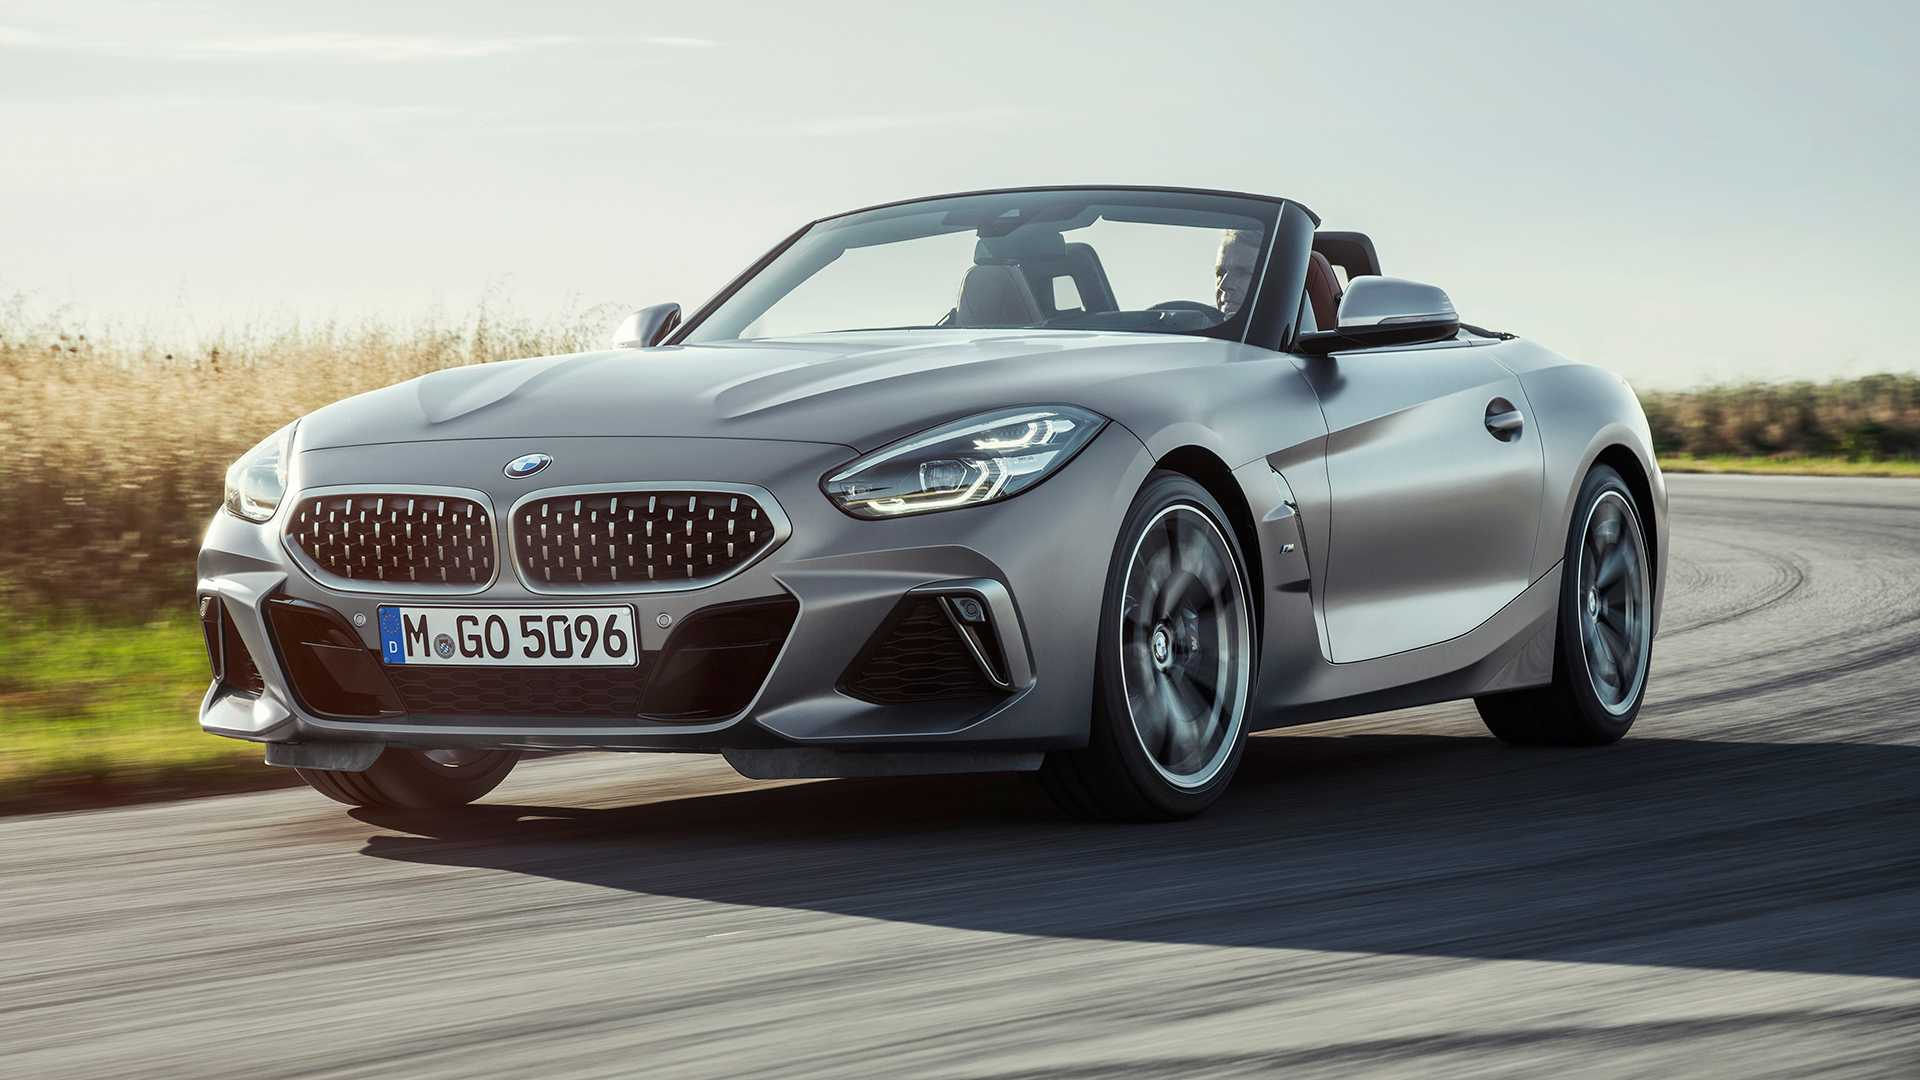 13 New The Bmw 2019 Z4 Dimensions Specs And Review New Concept with The Bmw 2019 Z4 Dimensions Specs And Review